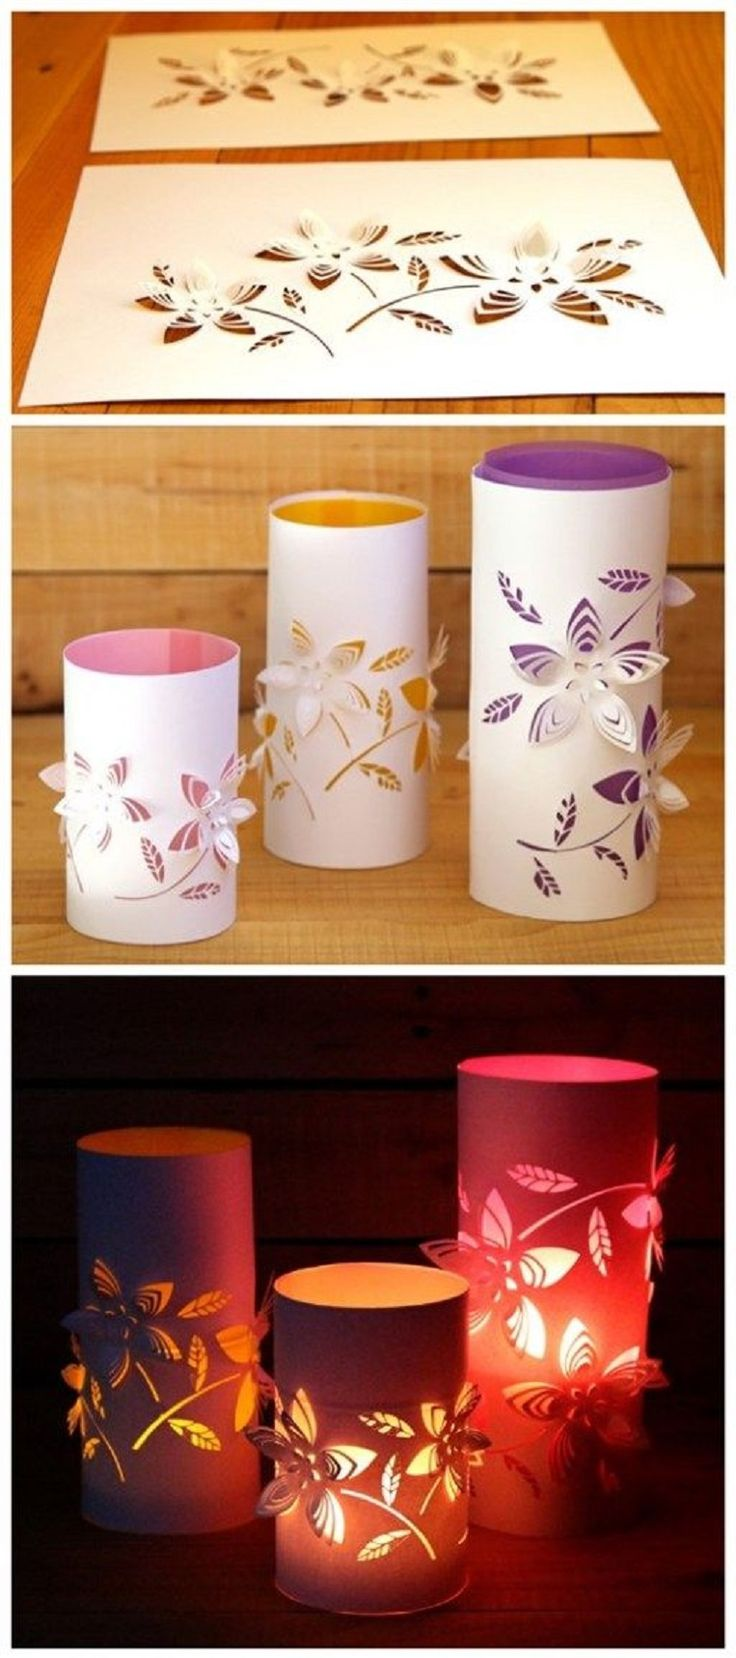 DIY Dimensional Paper Lanterns Tutorial #craft #DIY #paper #lantern #tutorial